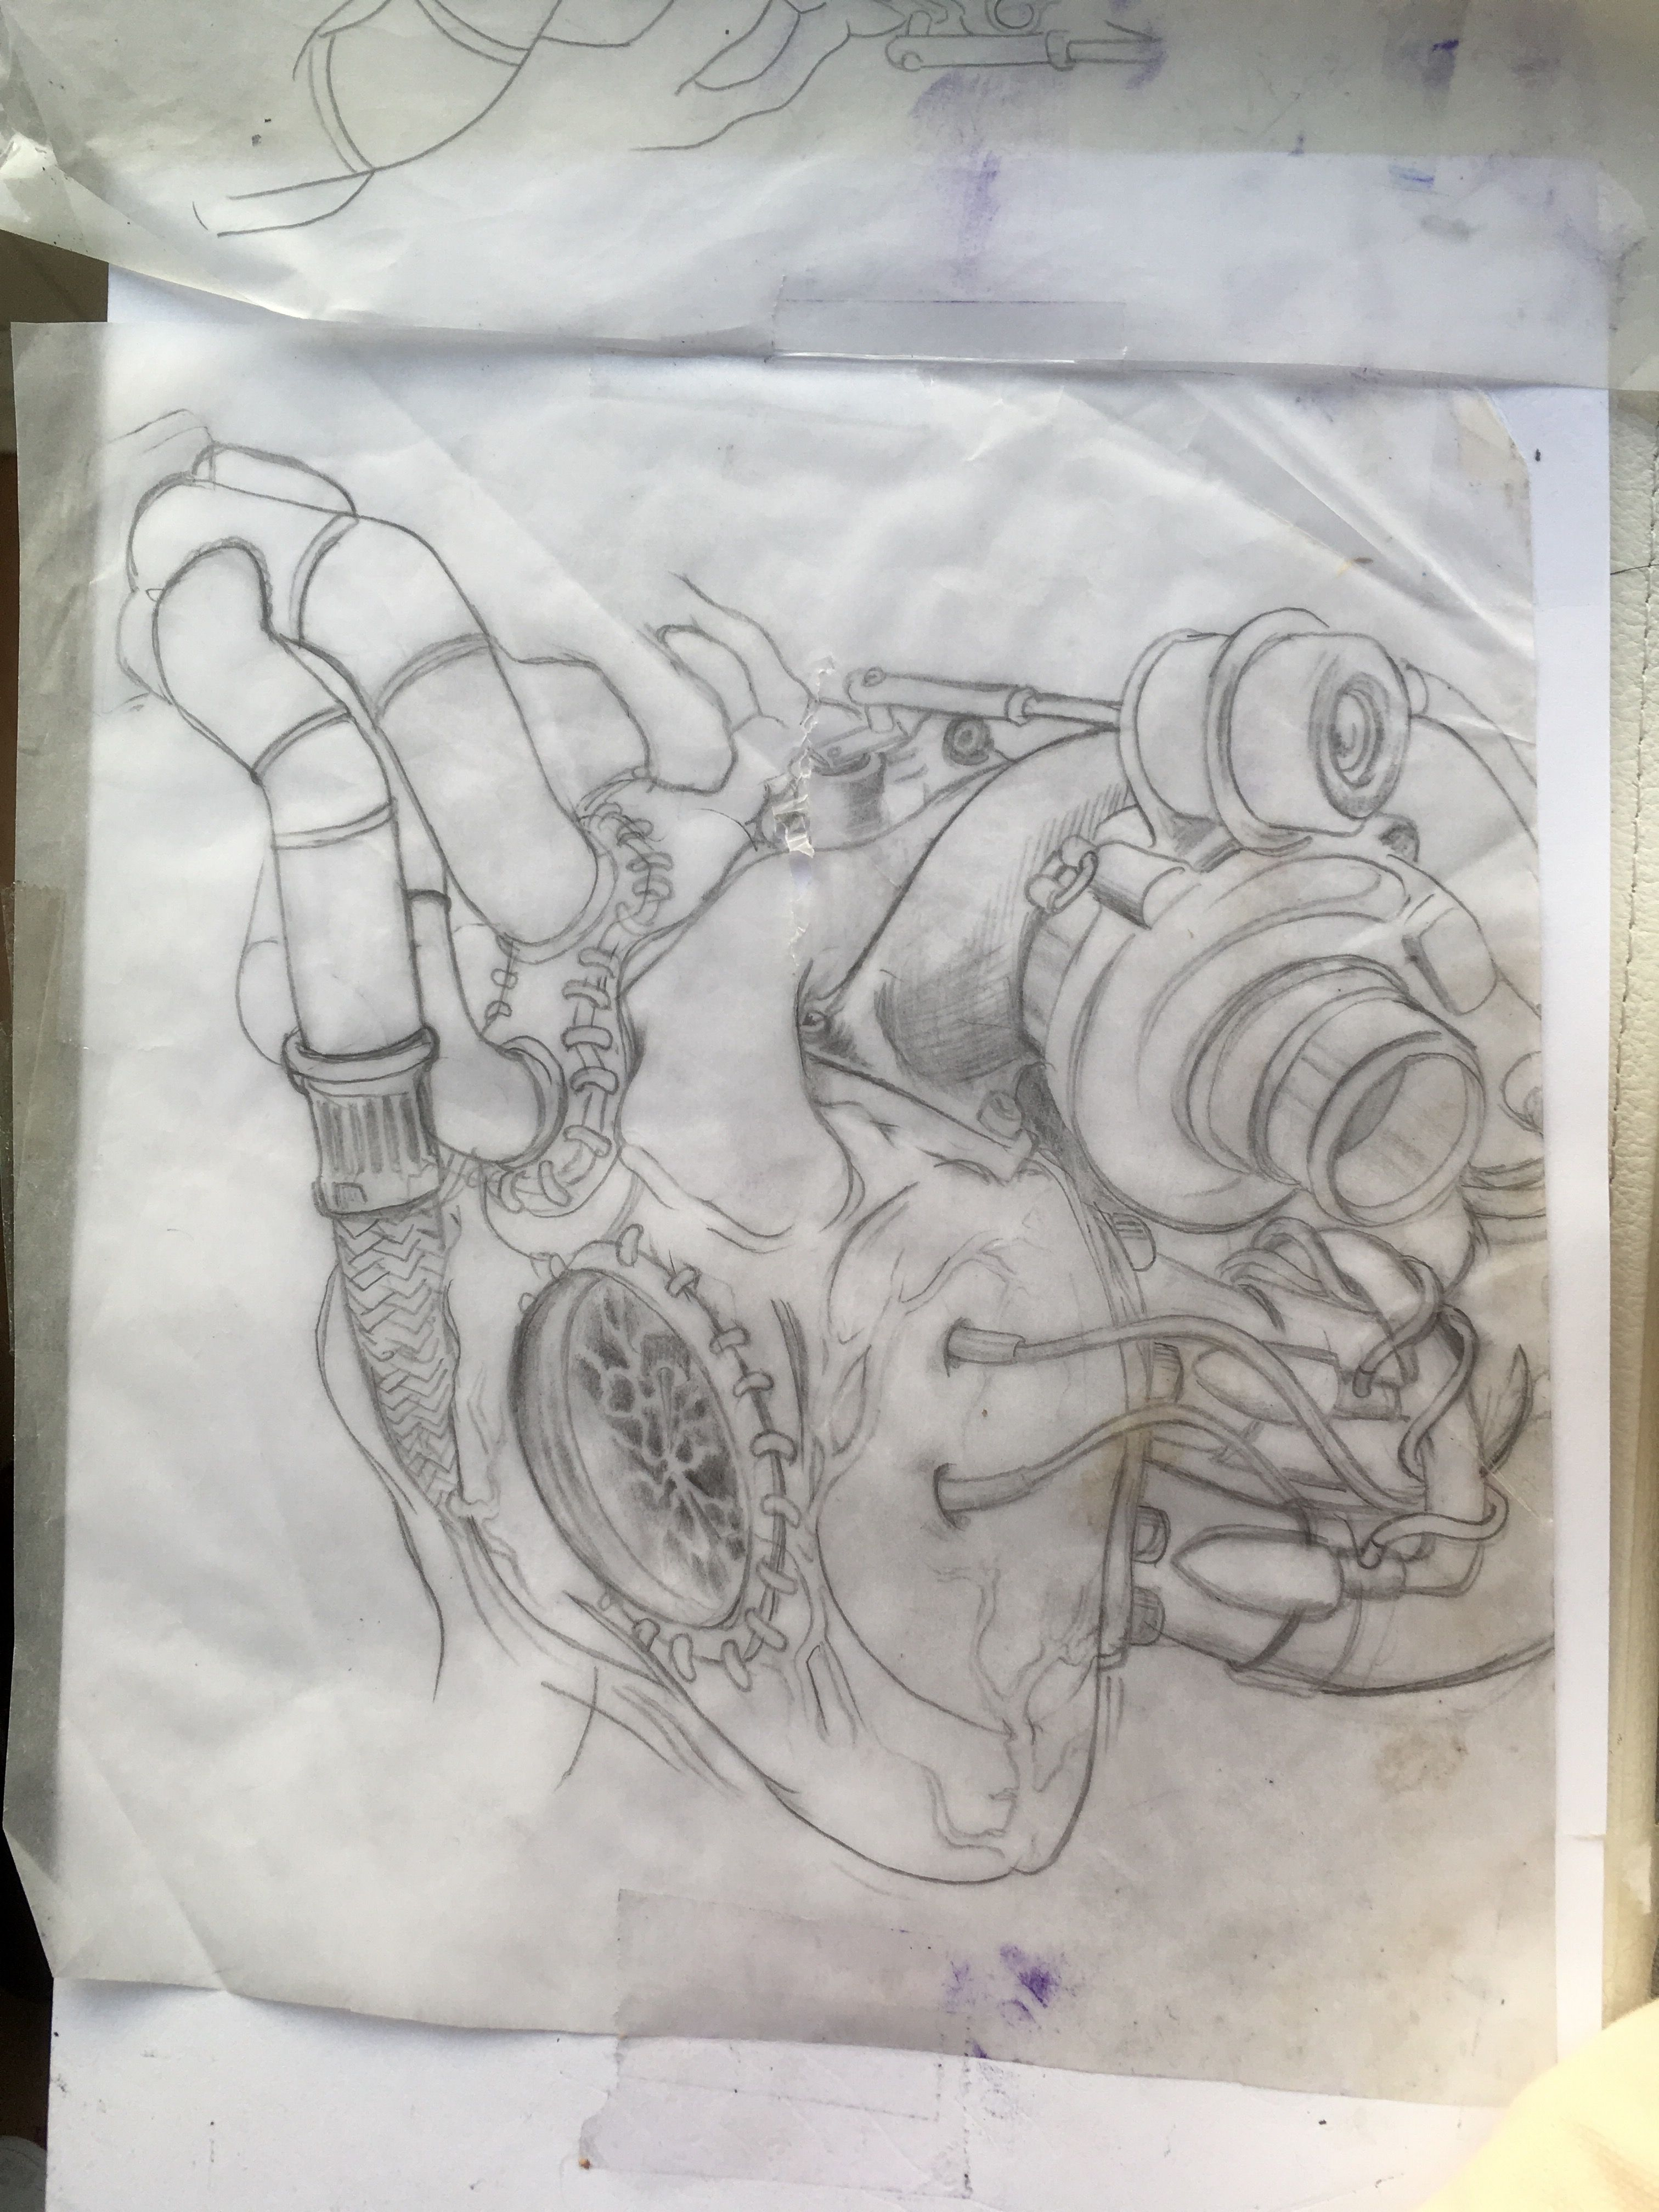 A biomec turbo heart design I been working on for a while